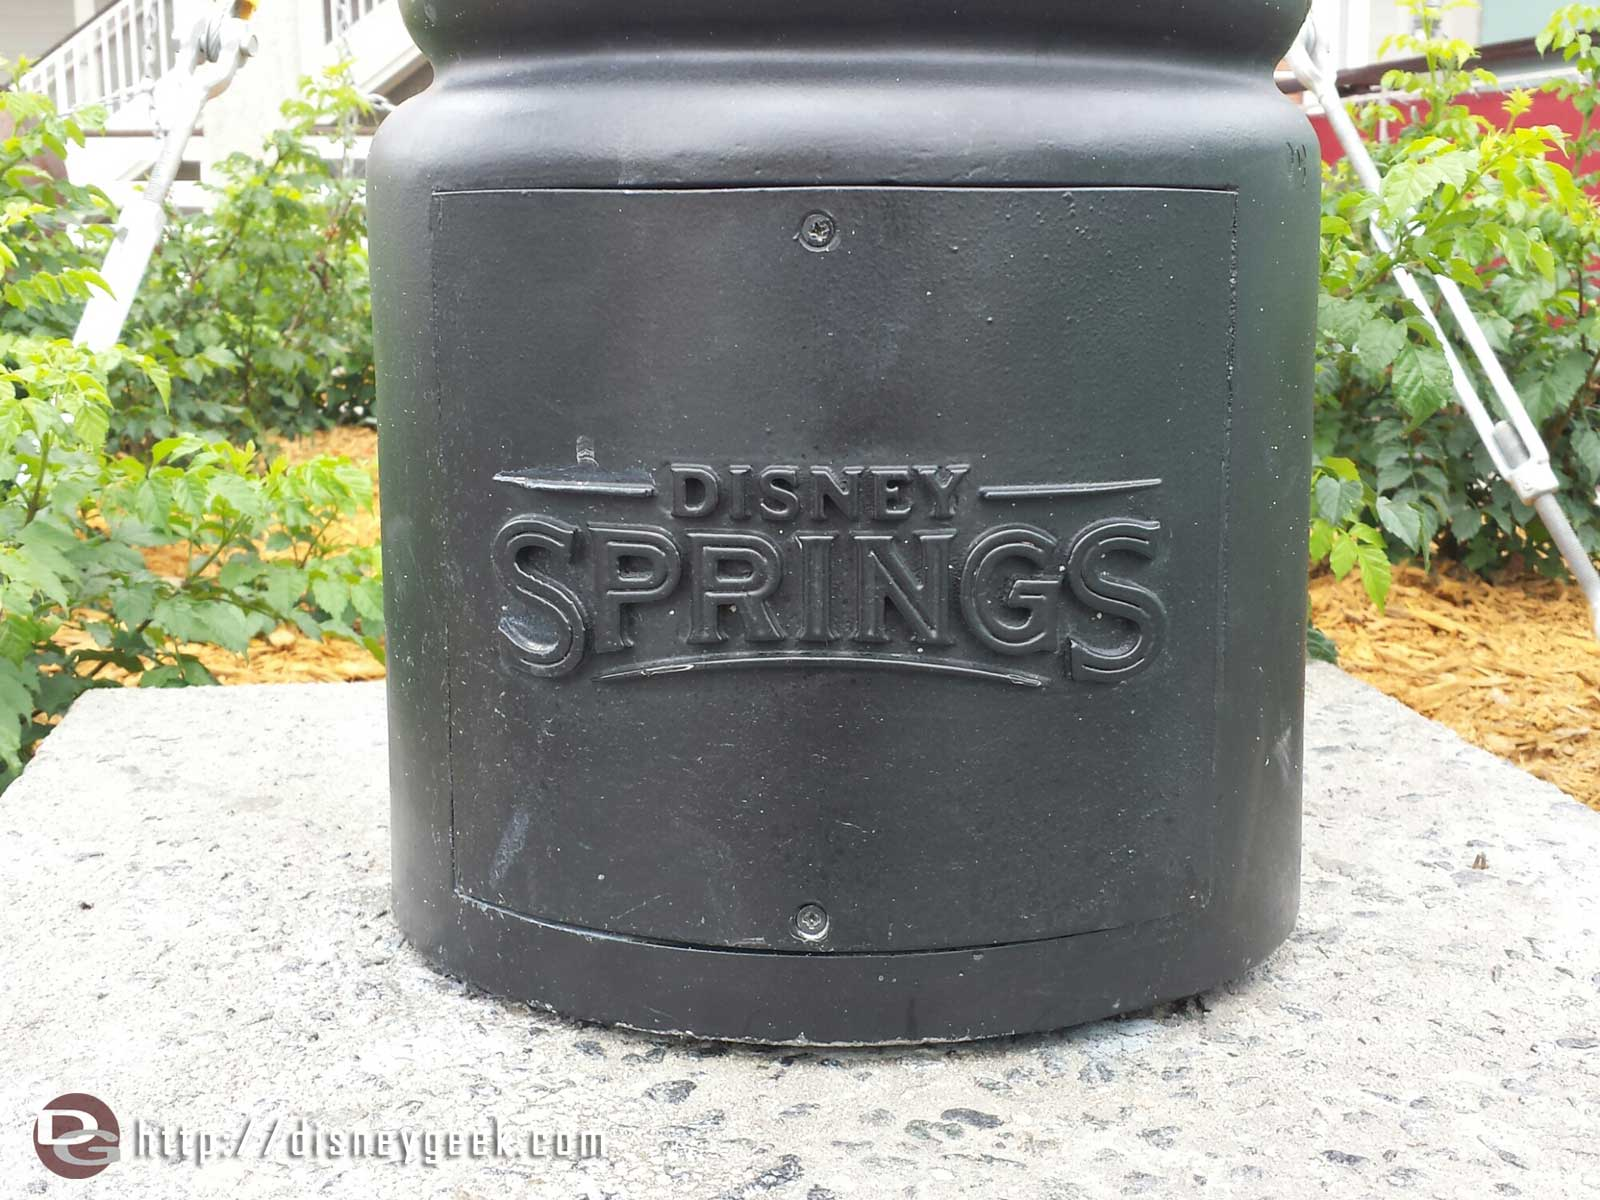 The base of the Disney Springs lamppost